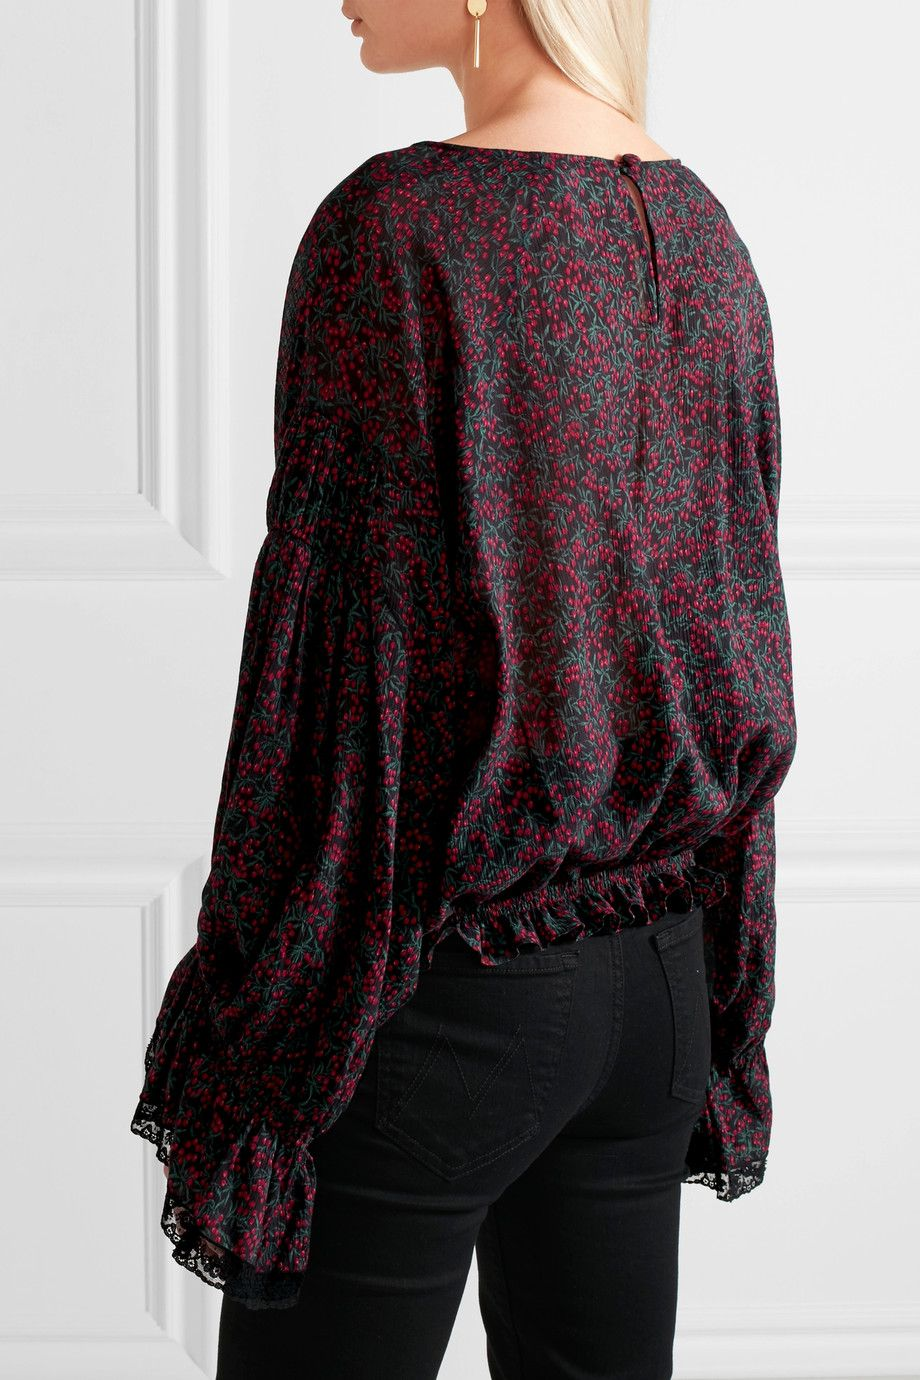 Chloé | Printed cotton and silk-blend georgette blouse | NET-A-PORTER.COM